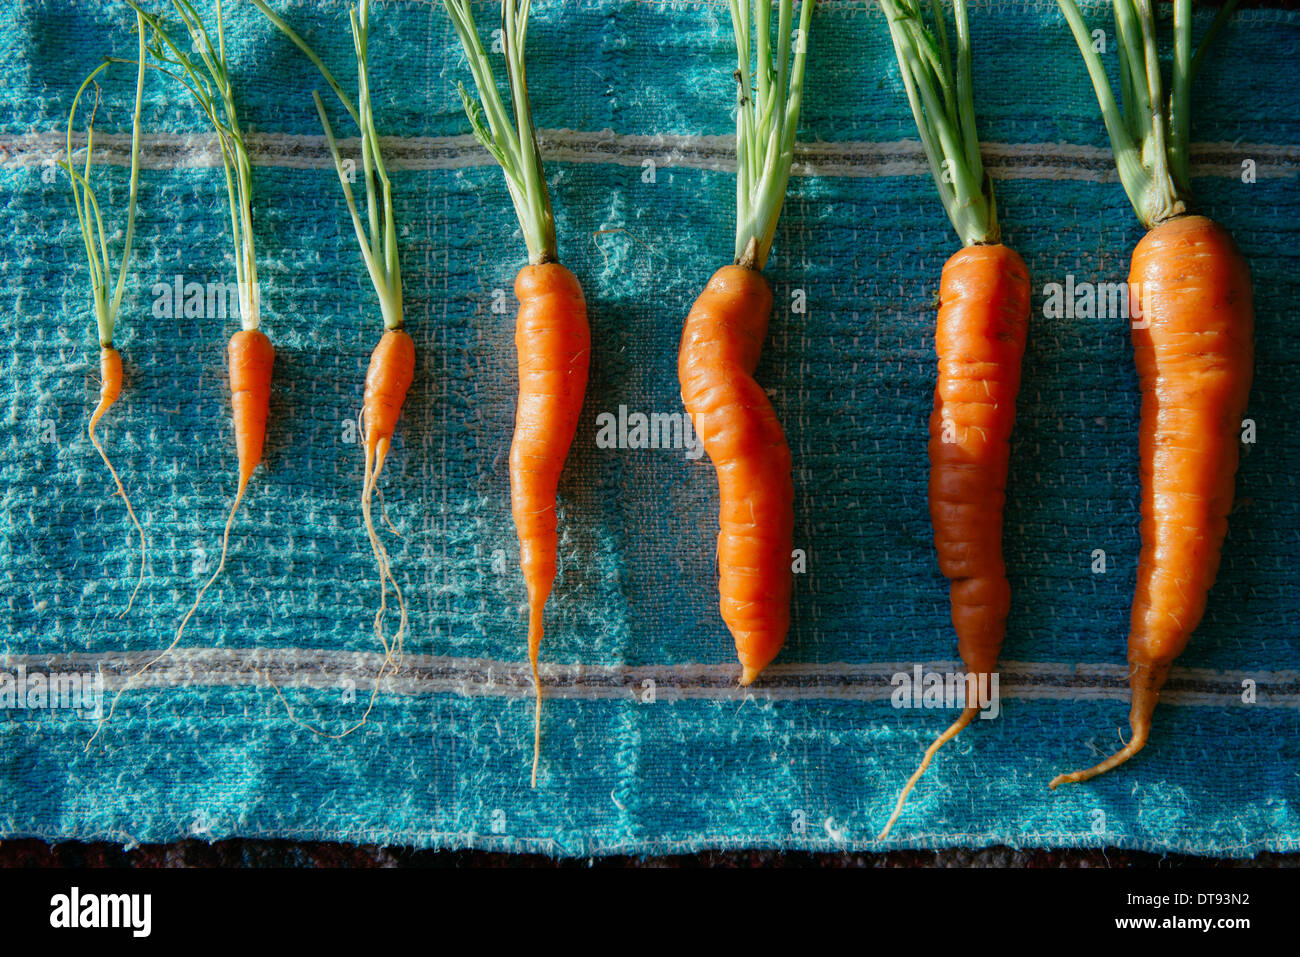 family of carrots of different sizes laid out against a dishcloth on a sunlit table - Stock Image